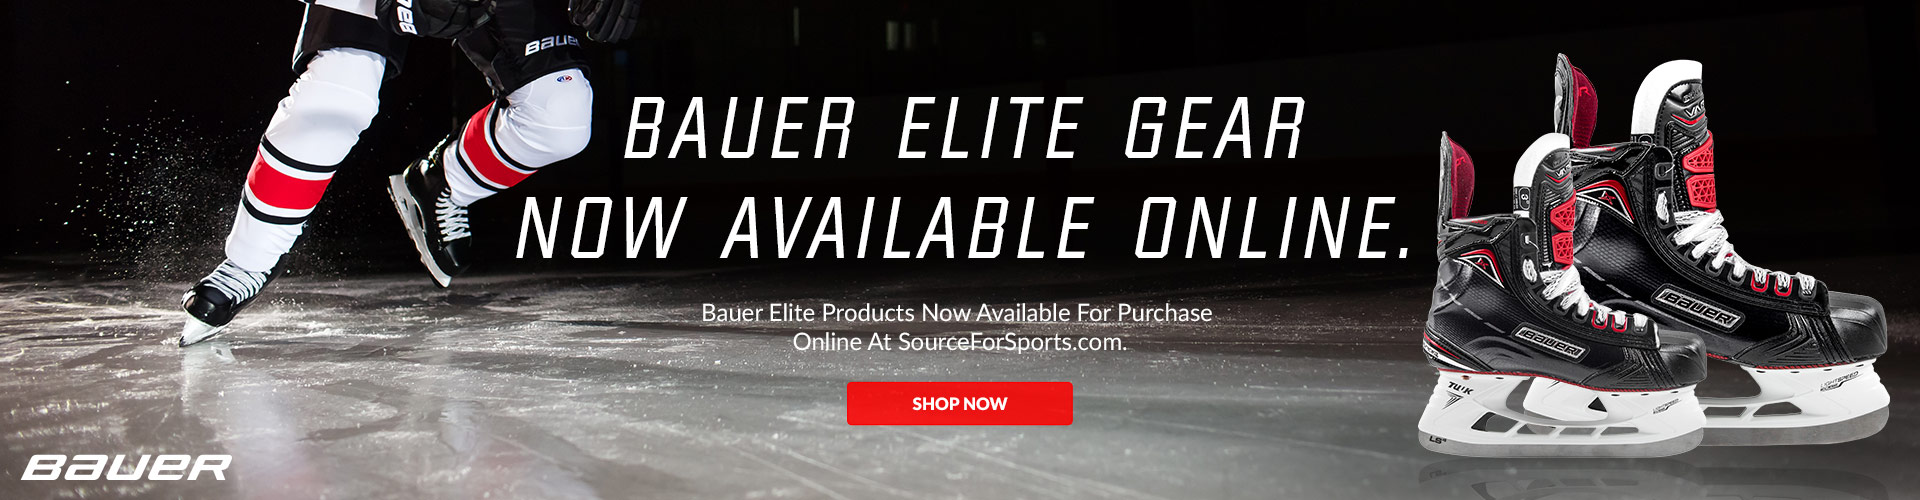 Bauer Elite Products Now Available For Purchase Online At SourceForSports.com.